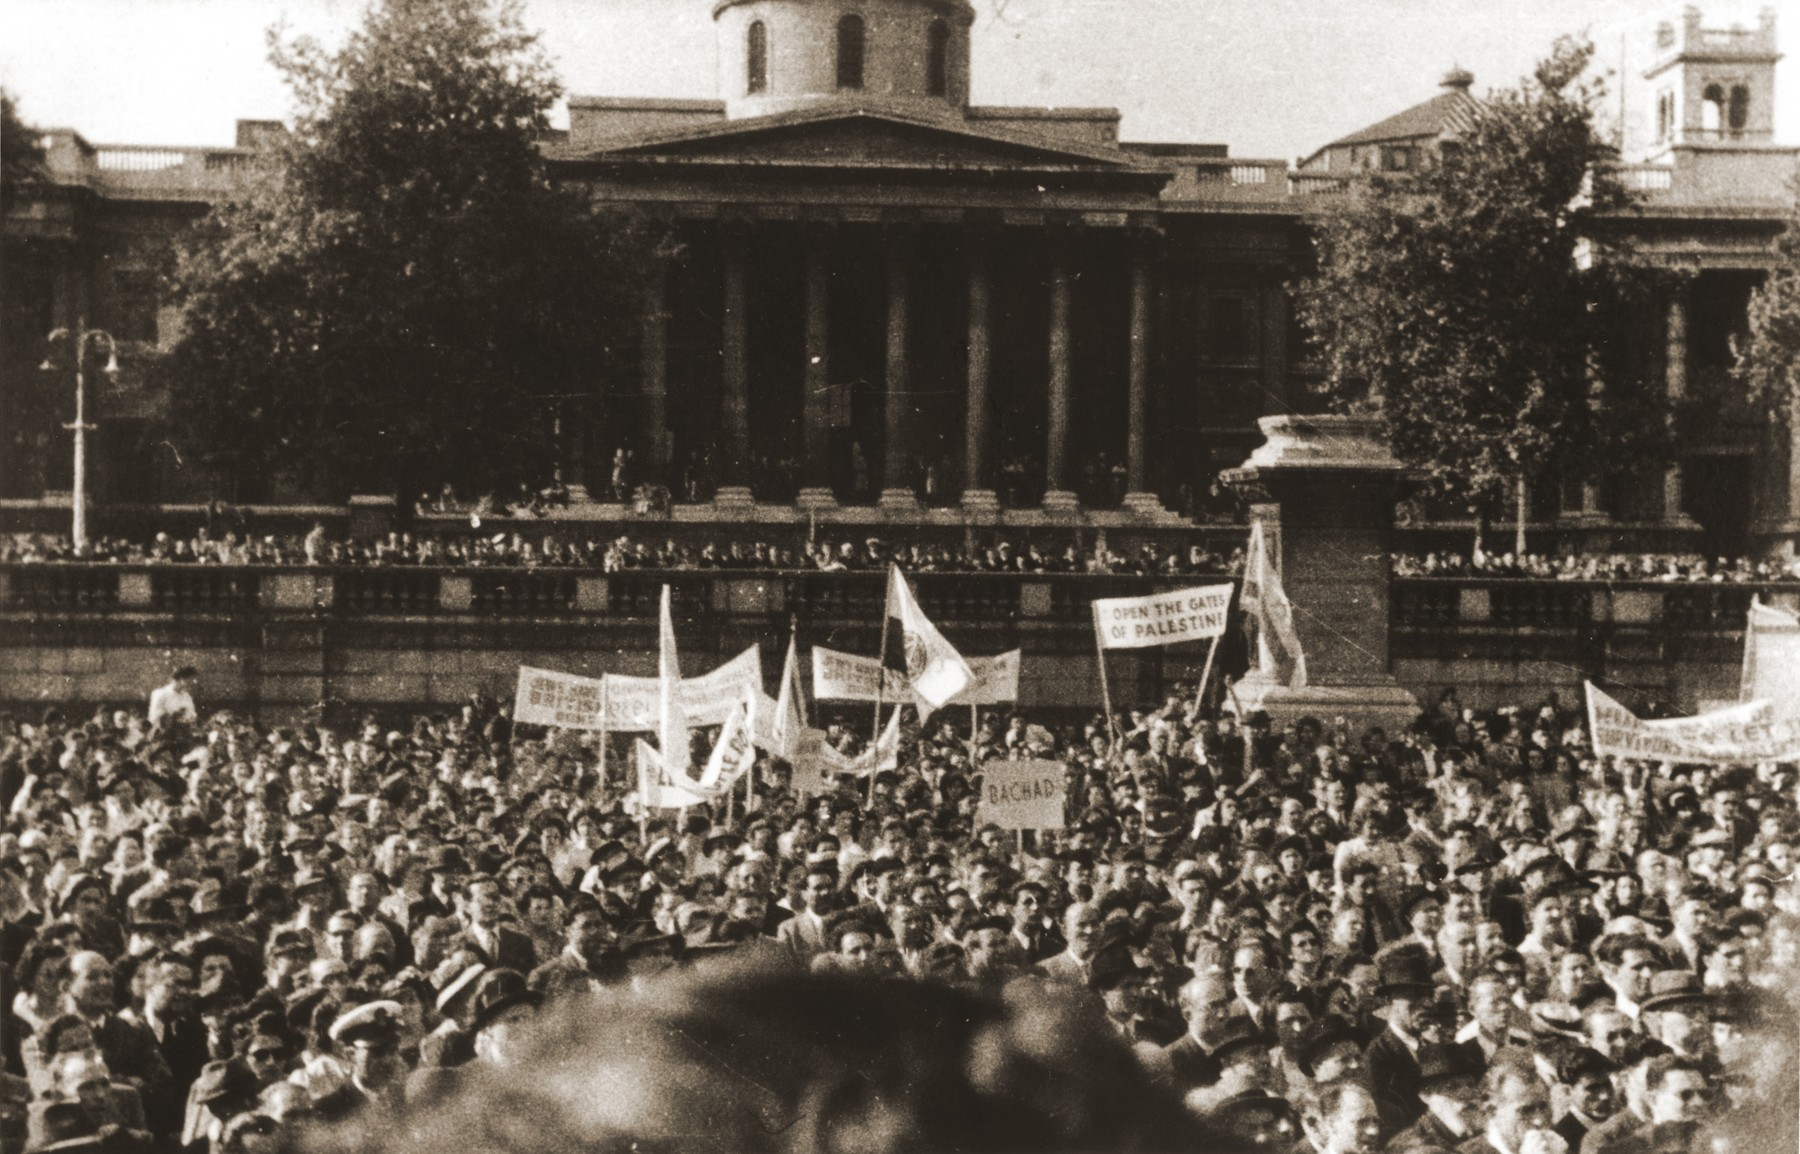 A large crowd of demonstrators protesting against British policy in Palestine, fills Trafalgar Square in London.  Among the demonstrators are members of the orphans transport to England.